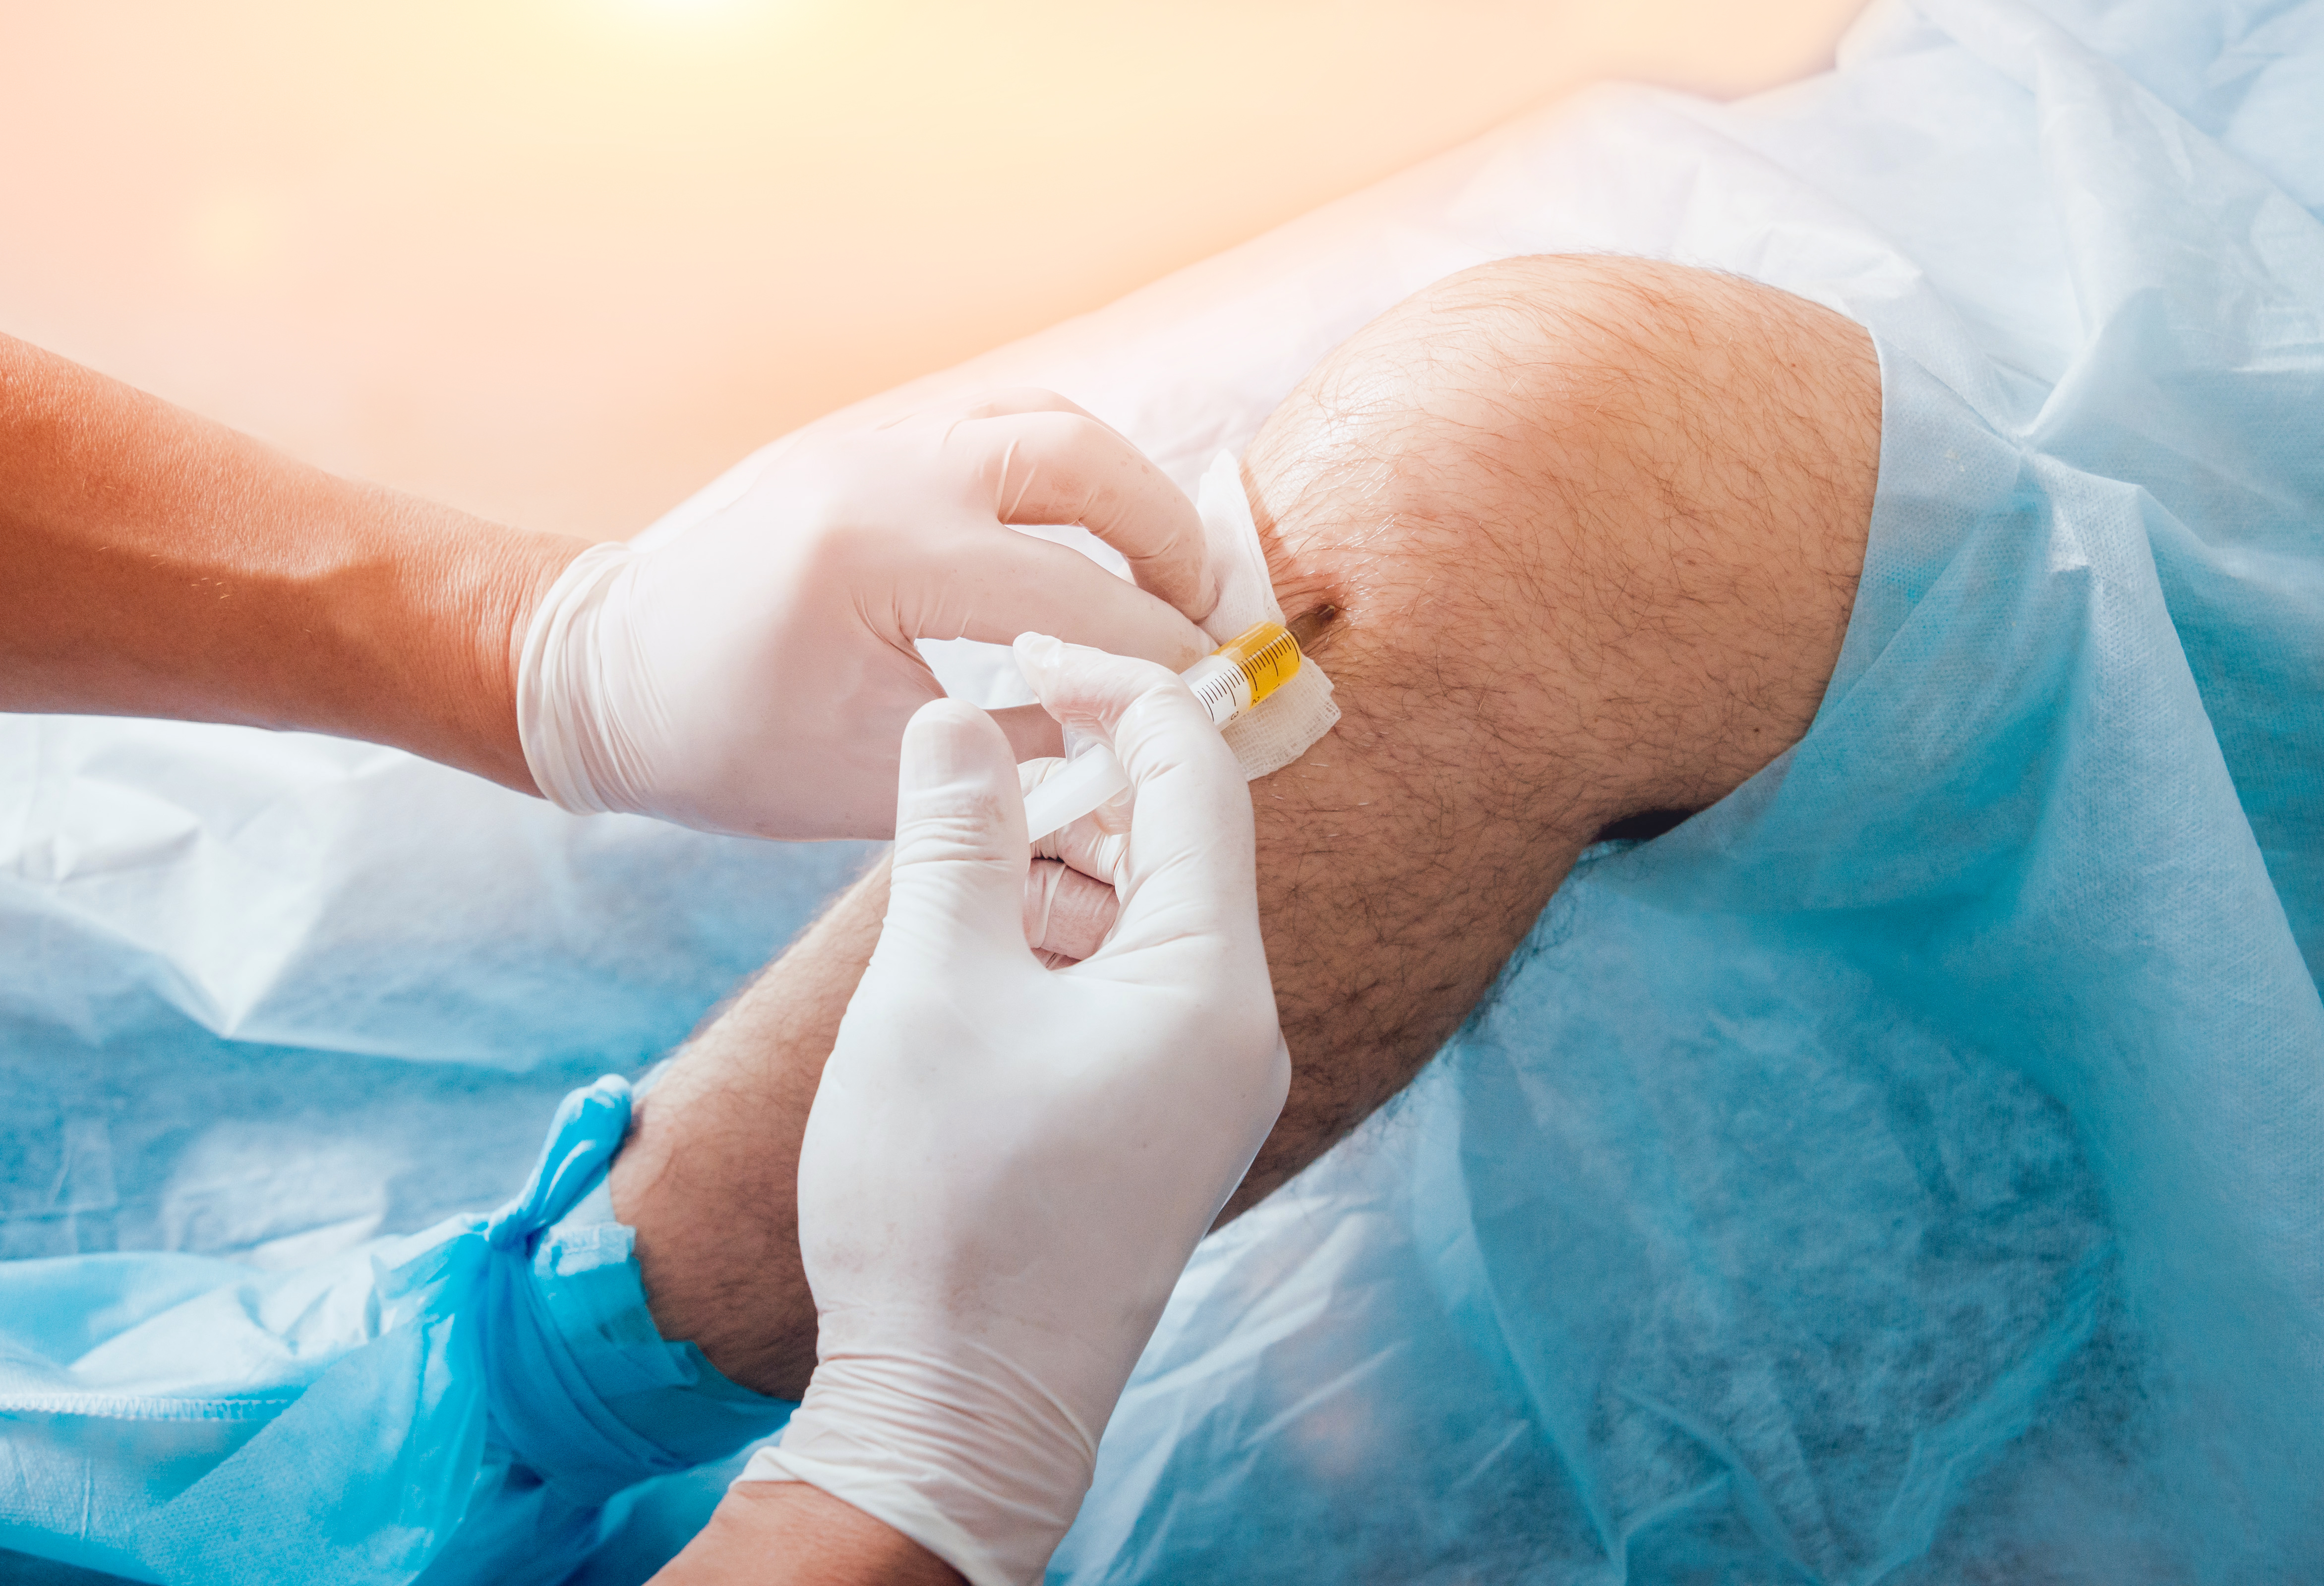 Gloved hands injects stems cells into a knee draped in blue medical sheeting